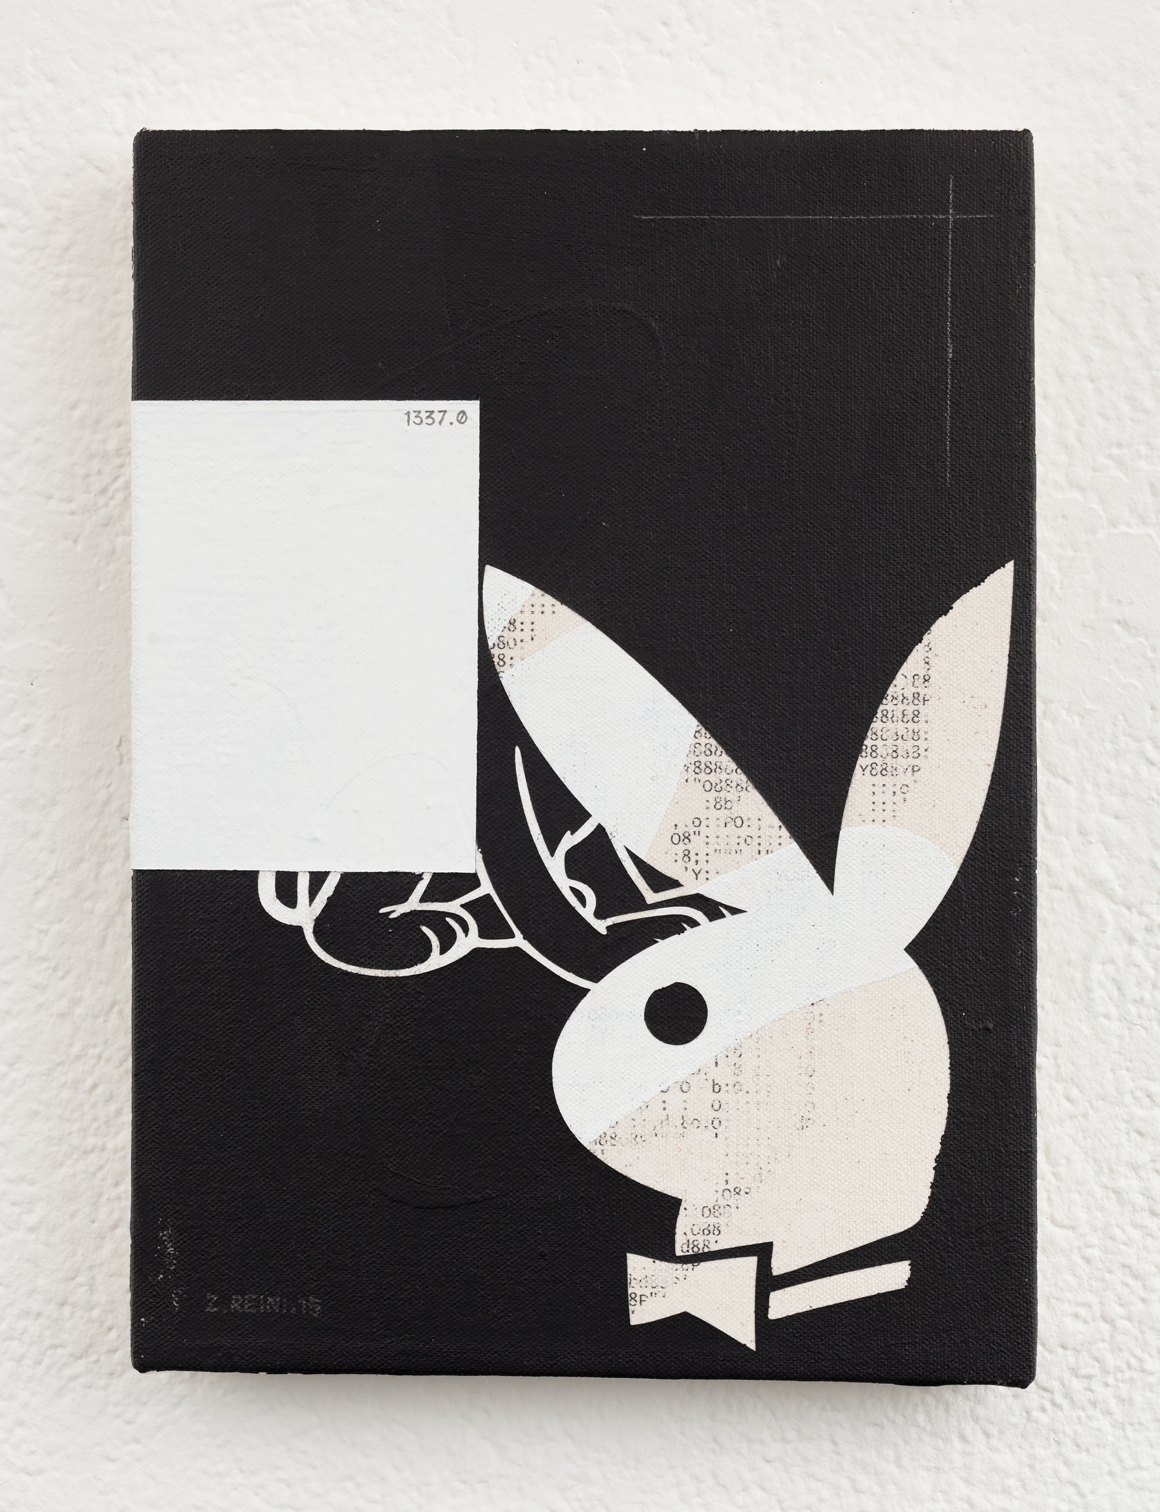 <p><em>Playboy</em><span class='media'>Latex, ink transfer, matte medium, graphite on canvas</span>28 x 20.3cm | 11 x 8in<br>2015<br><a class='inquire' href='mailto:info@gildargallery.com?subject=Artwork Inquiry ZREI0024&body=I am interested in finding out more about Playboy by Zach Reini'>Inquire</a></p>